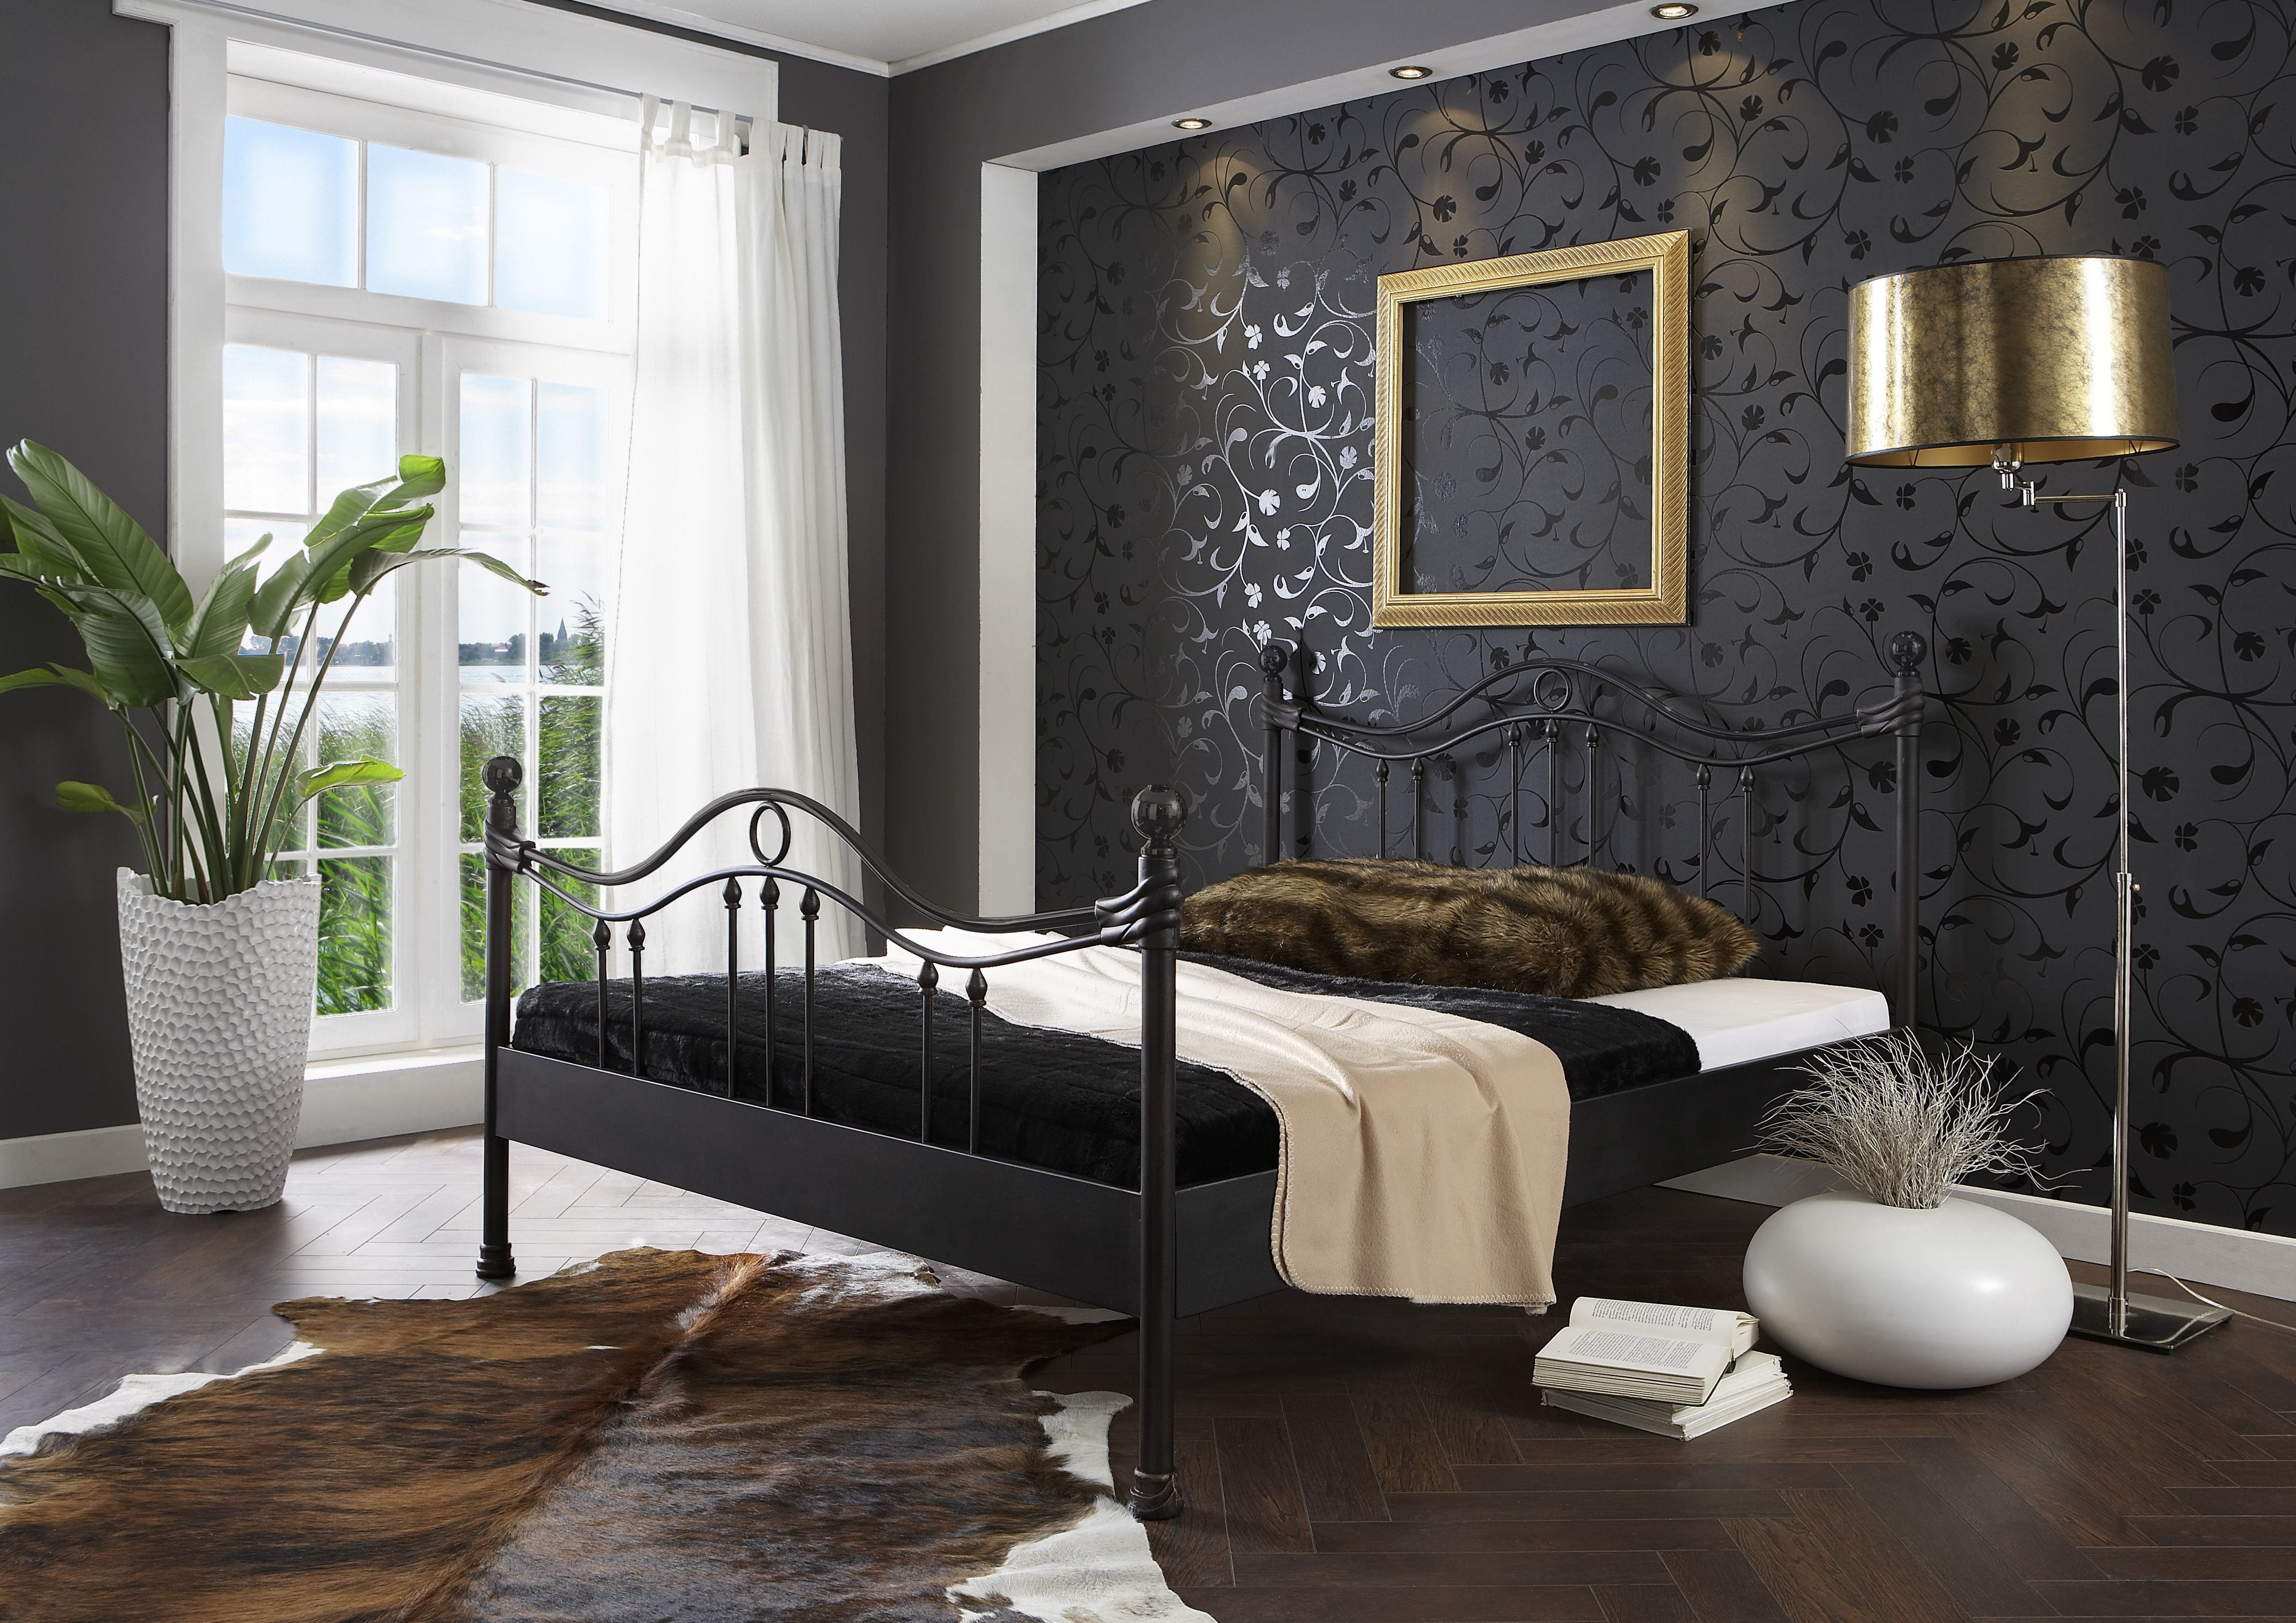 metalen bed helmond. Black Bedroom Furniture Sets. Home Design Ideas